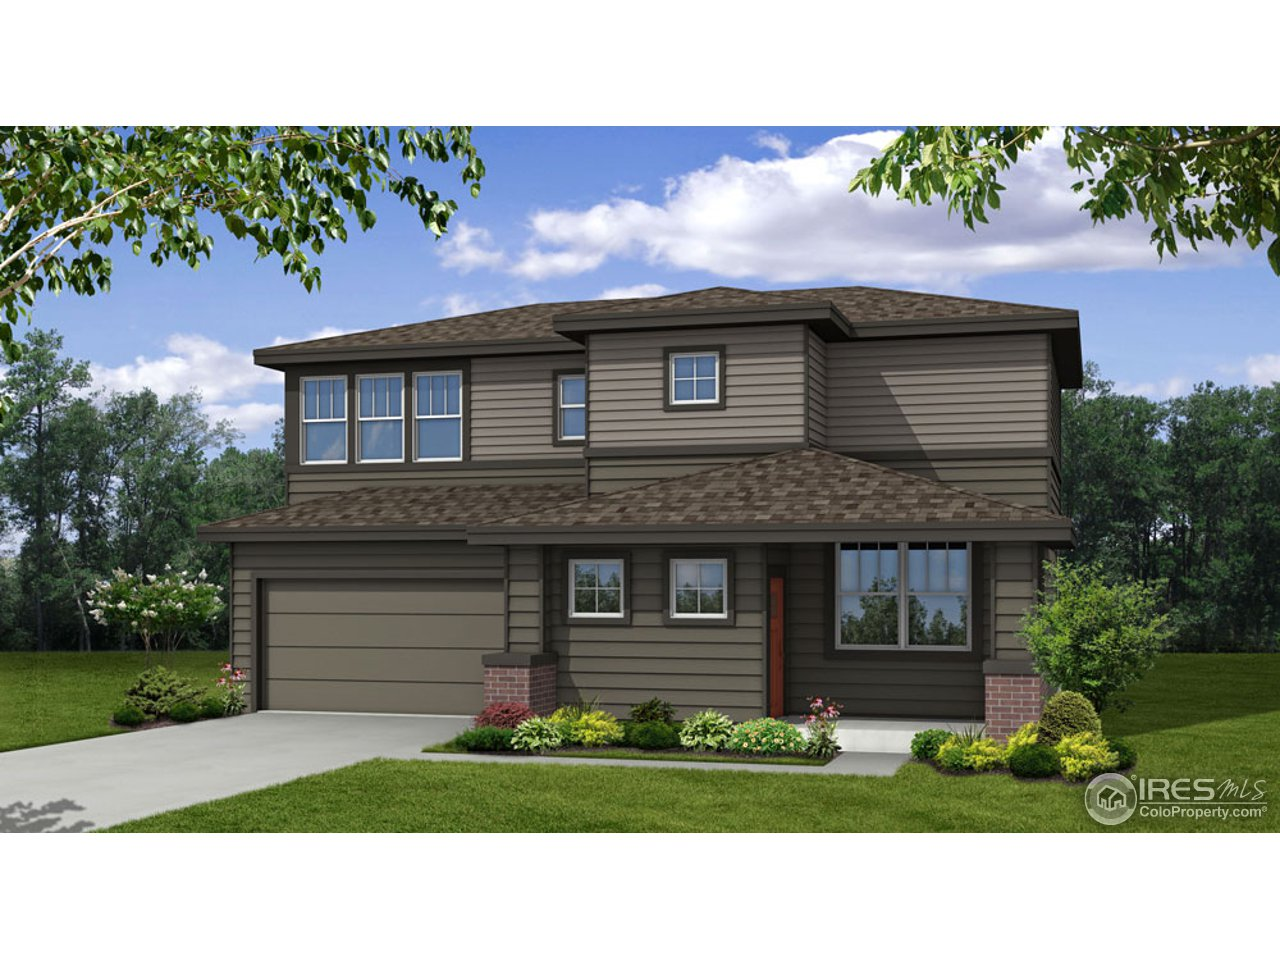 2127 Lambic St, Fort Collins, CO 80524